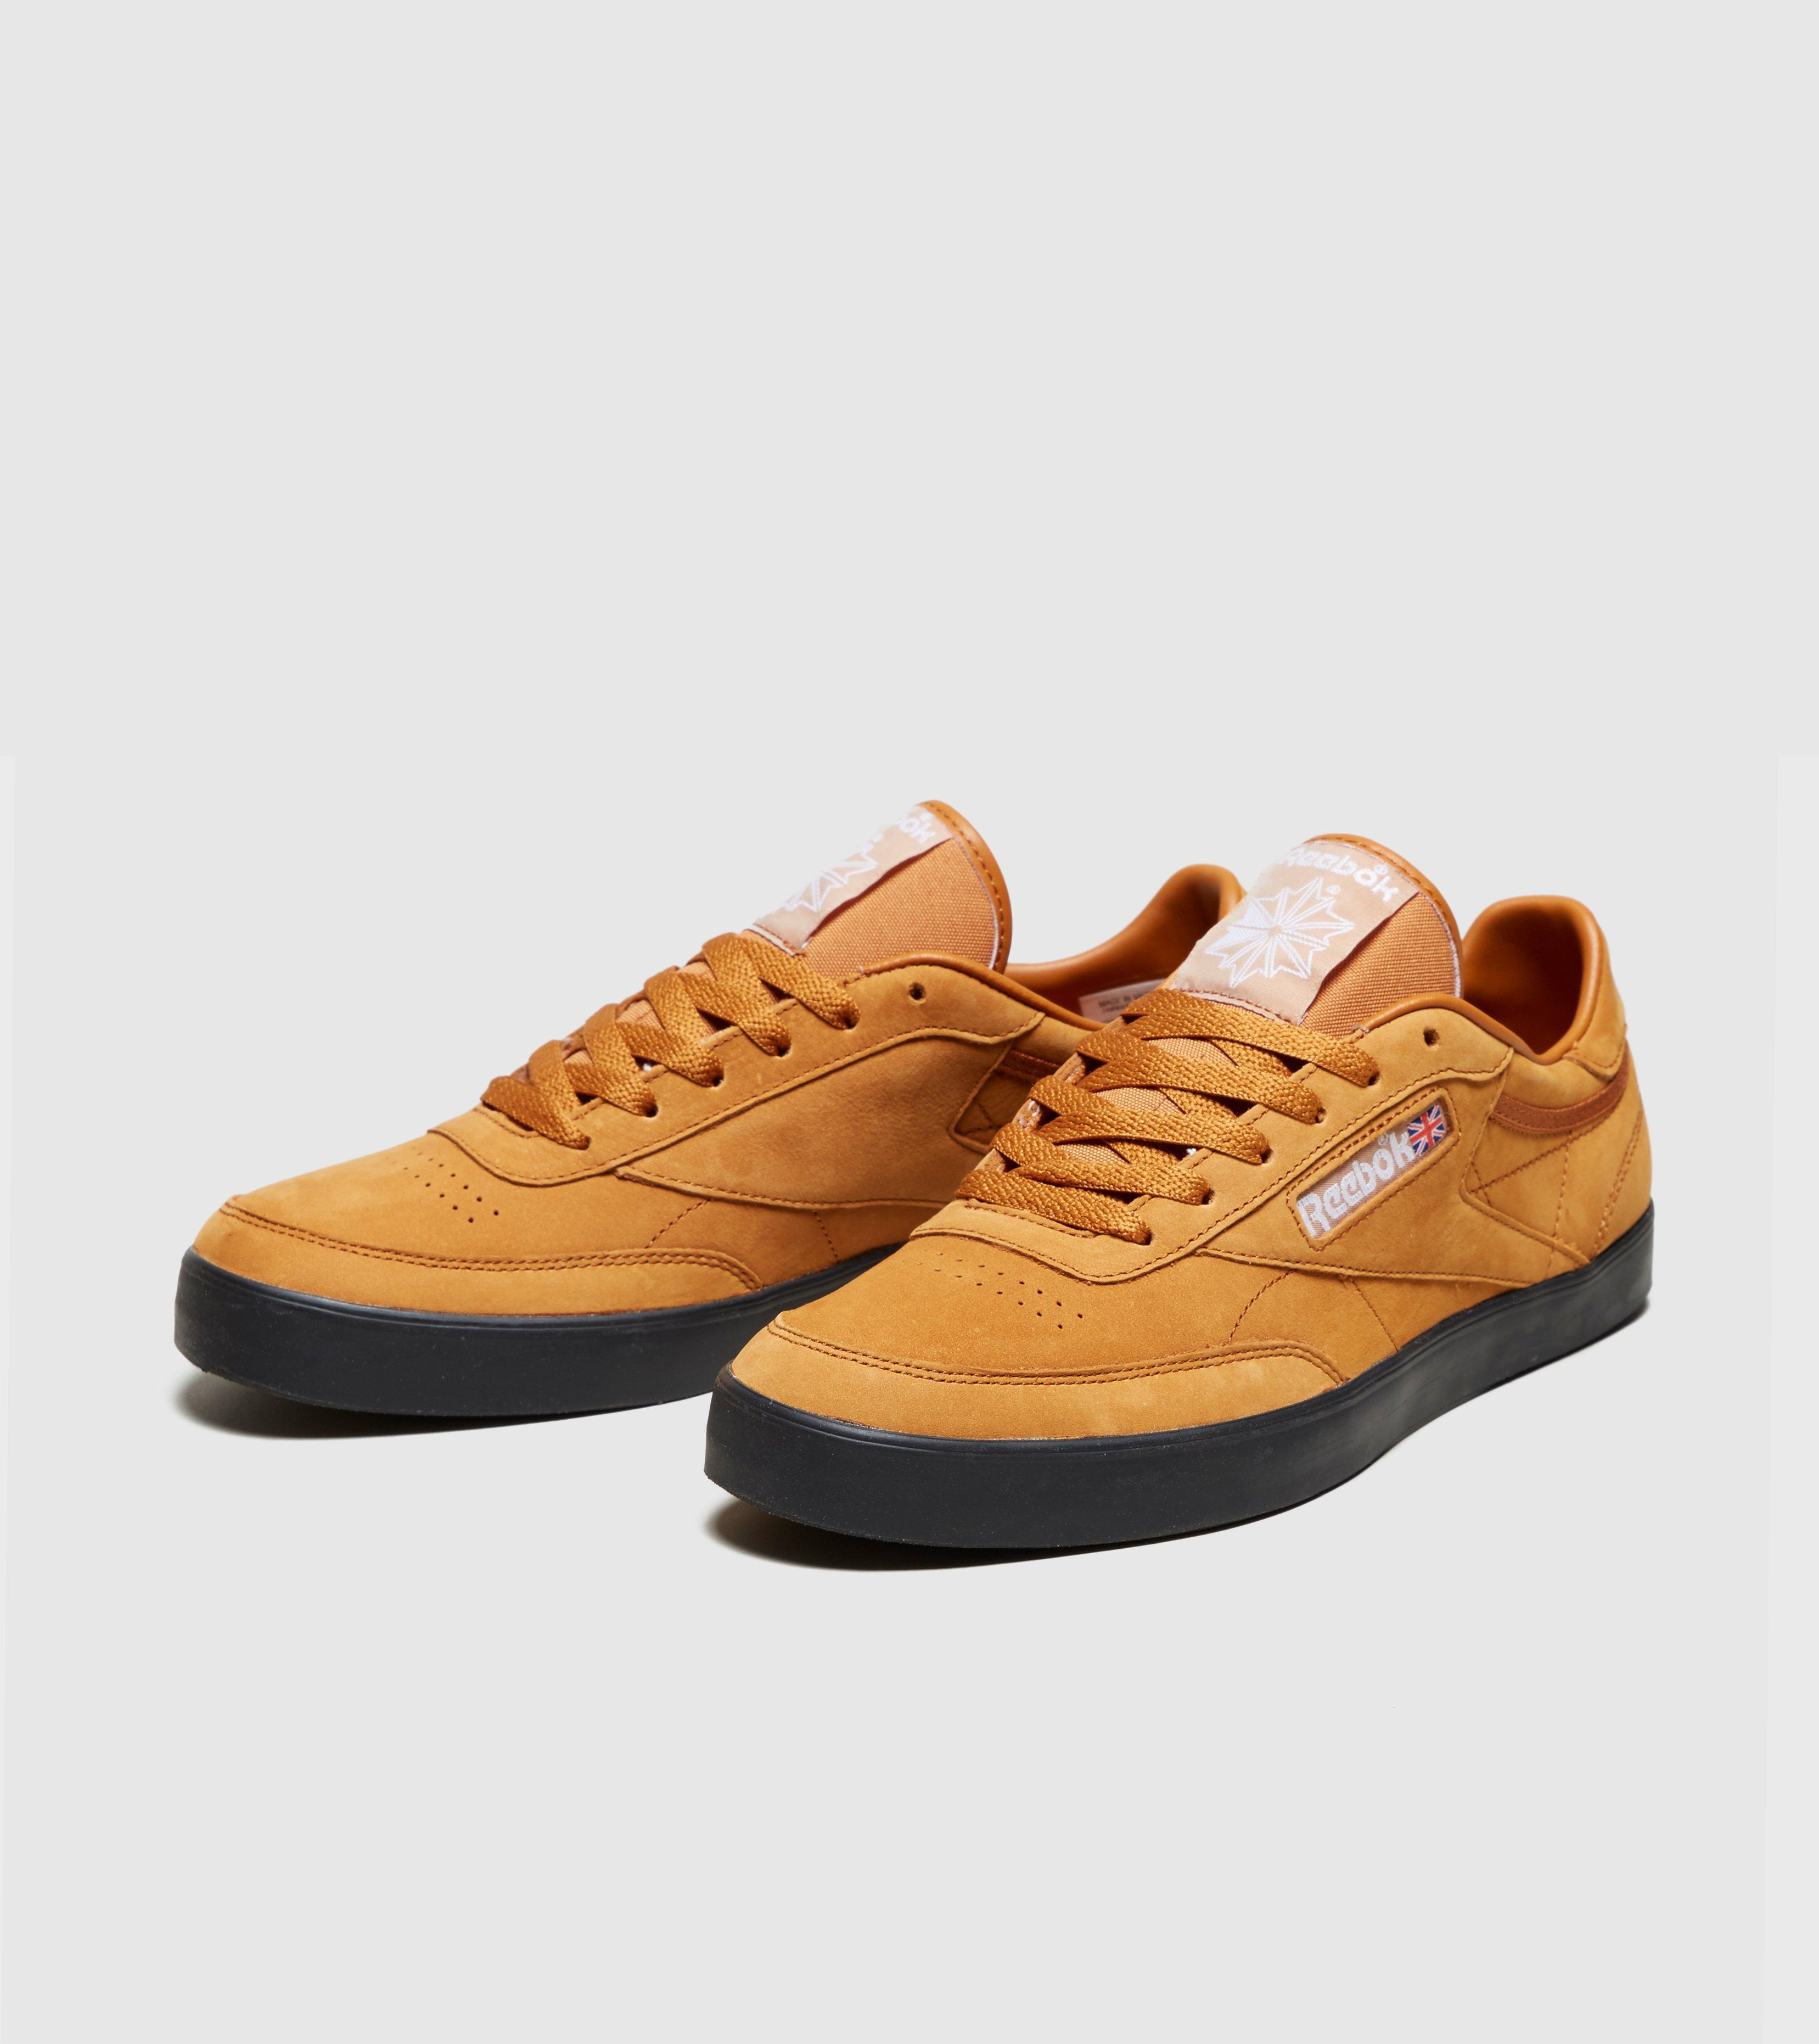 a8703d7f1f3bd4 Lyst - Reebok Club C Fvs - Size  Exclusive in Brown for Men